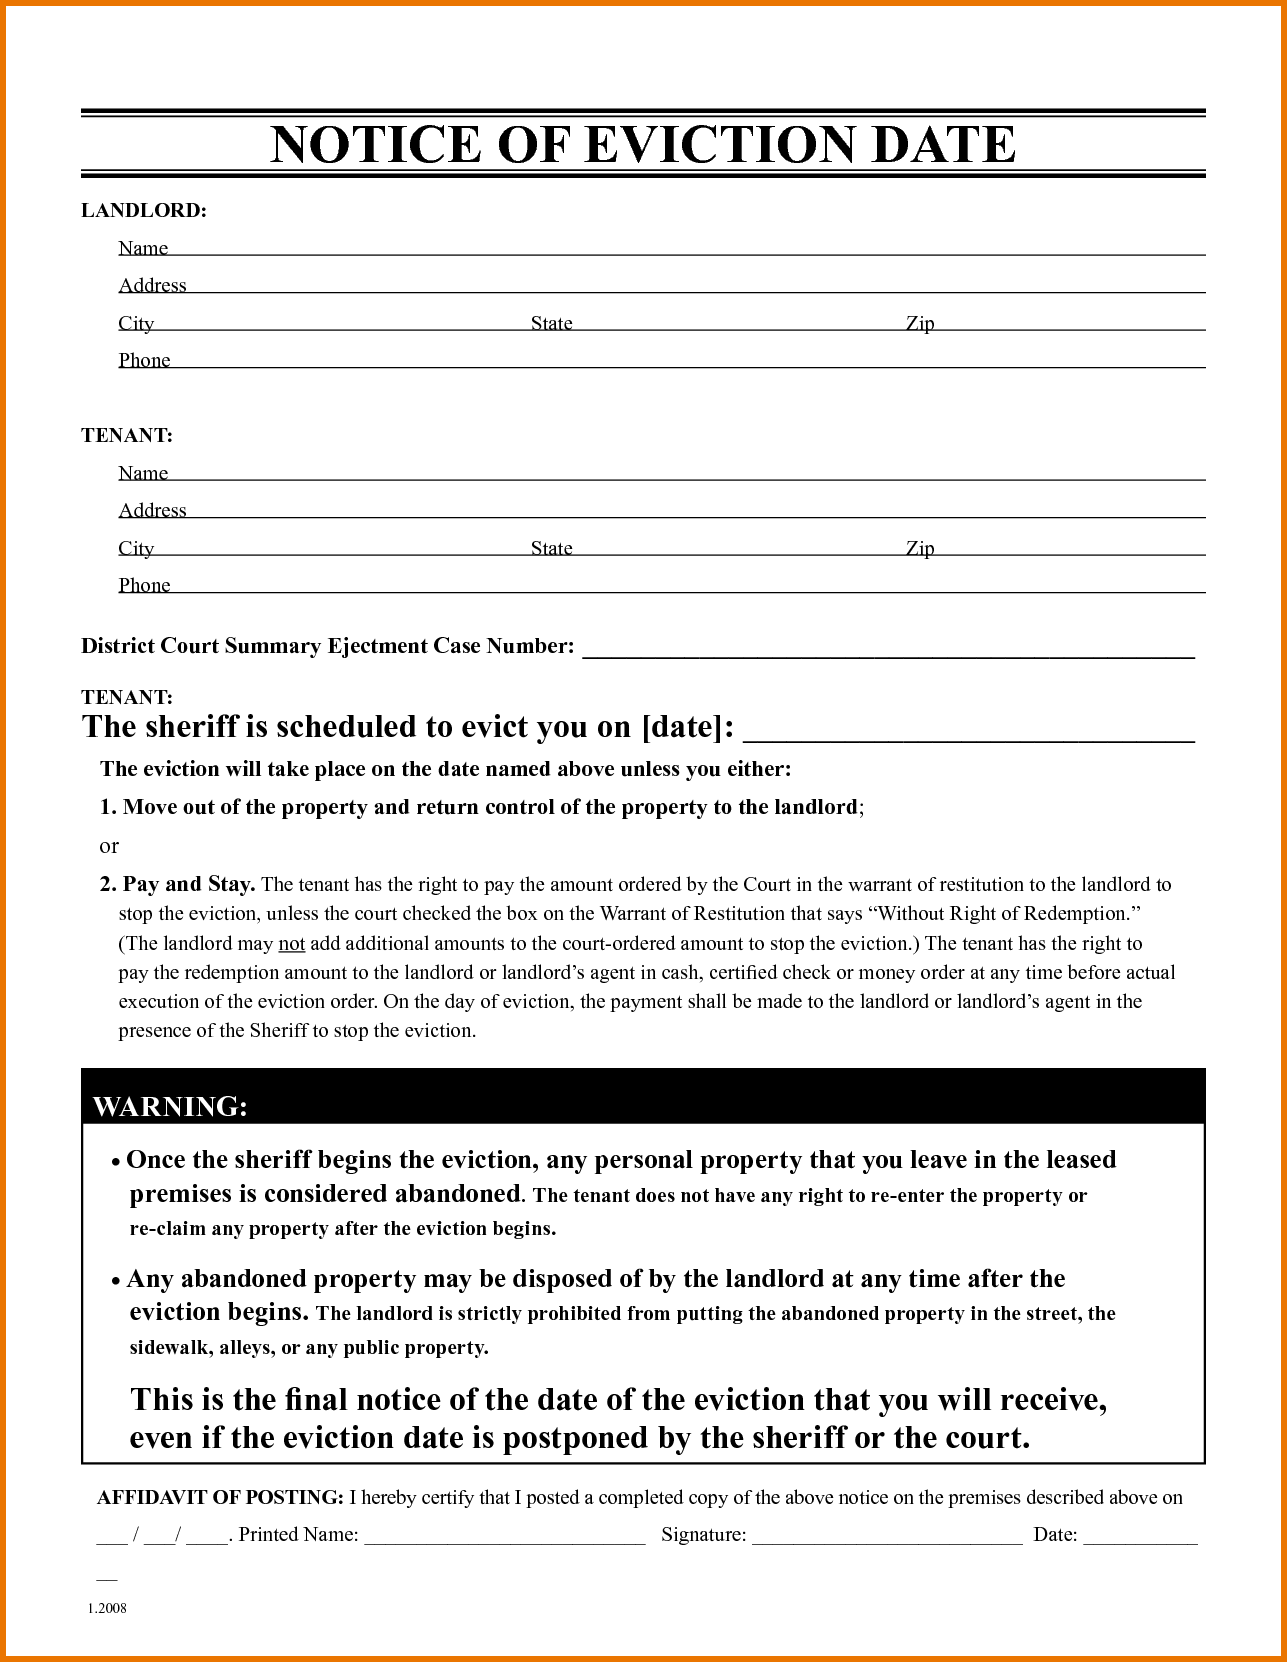 Free Eviction Notice Form Free Eviction Notice TemplateDownload